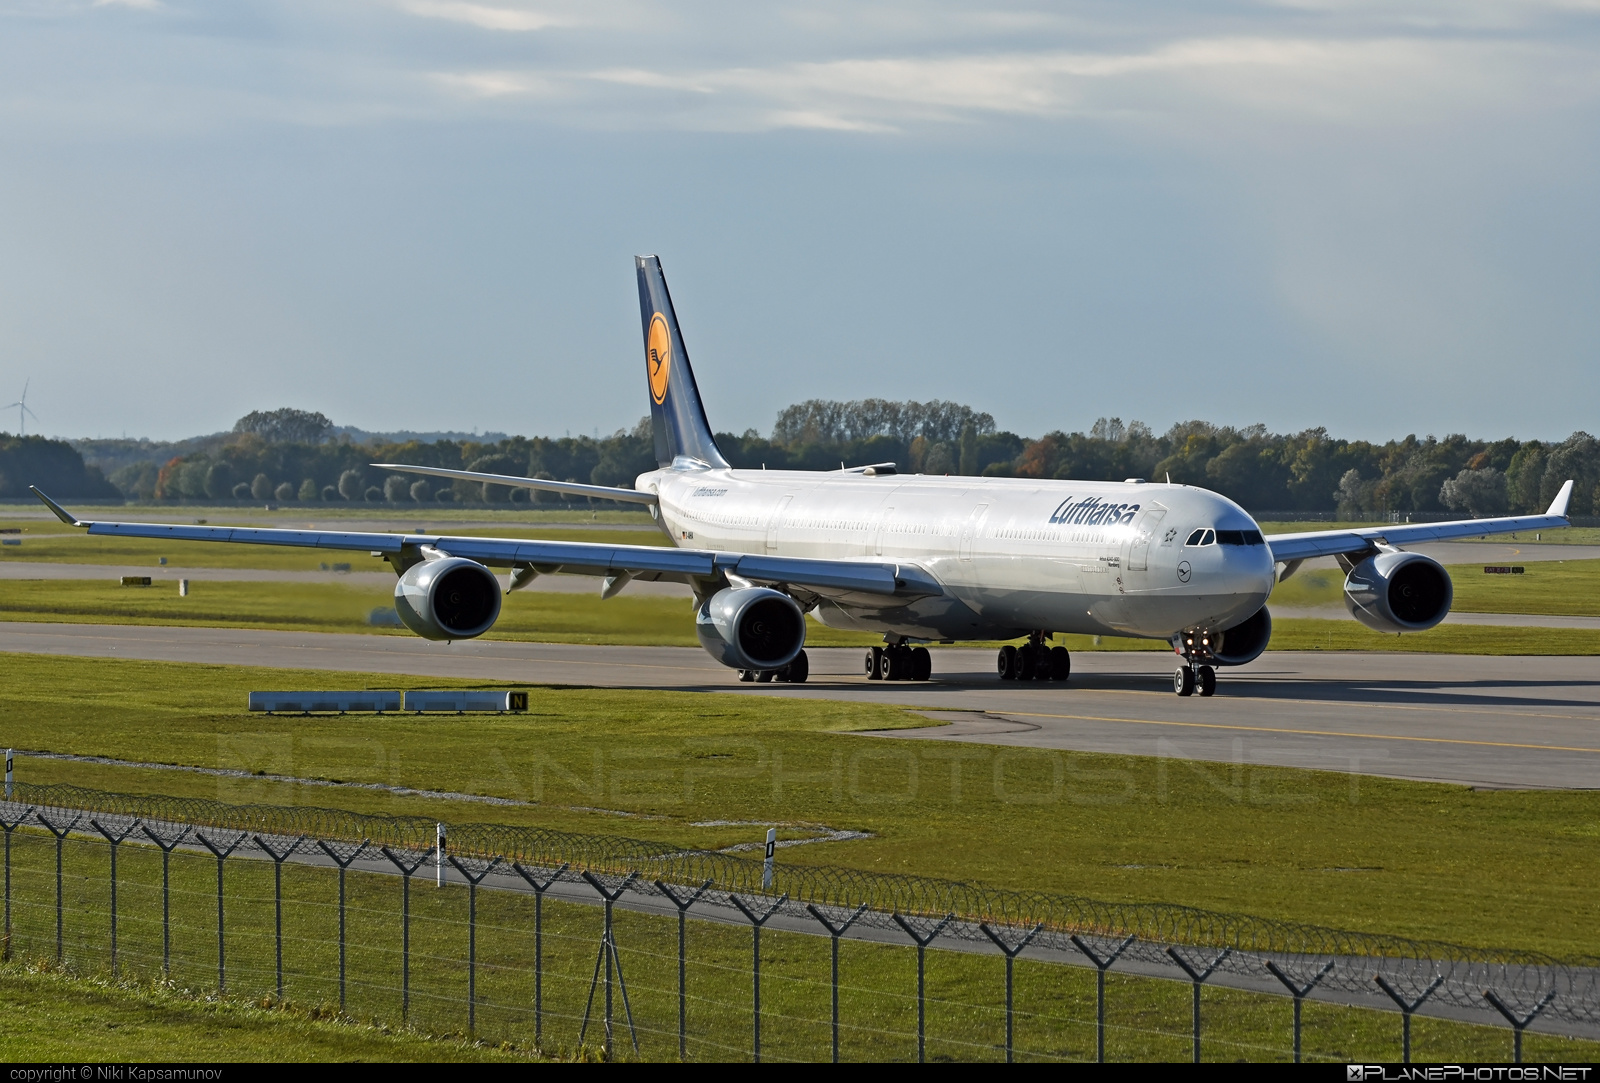 Airbus A340-642 - D-AIHA operated by Lufthansa #a340 #a340family #airbus #airbus340 #lufthansa